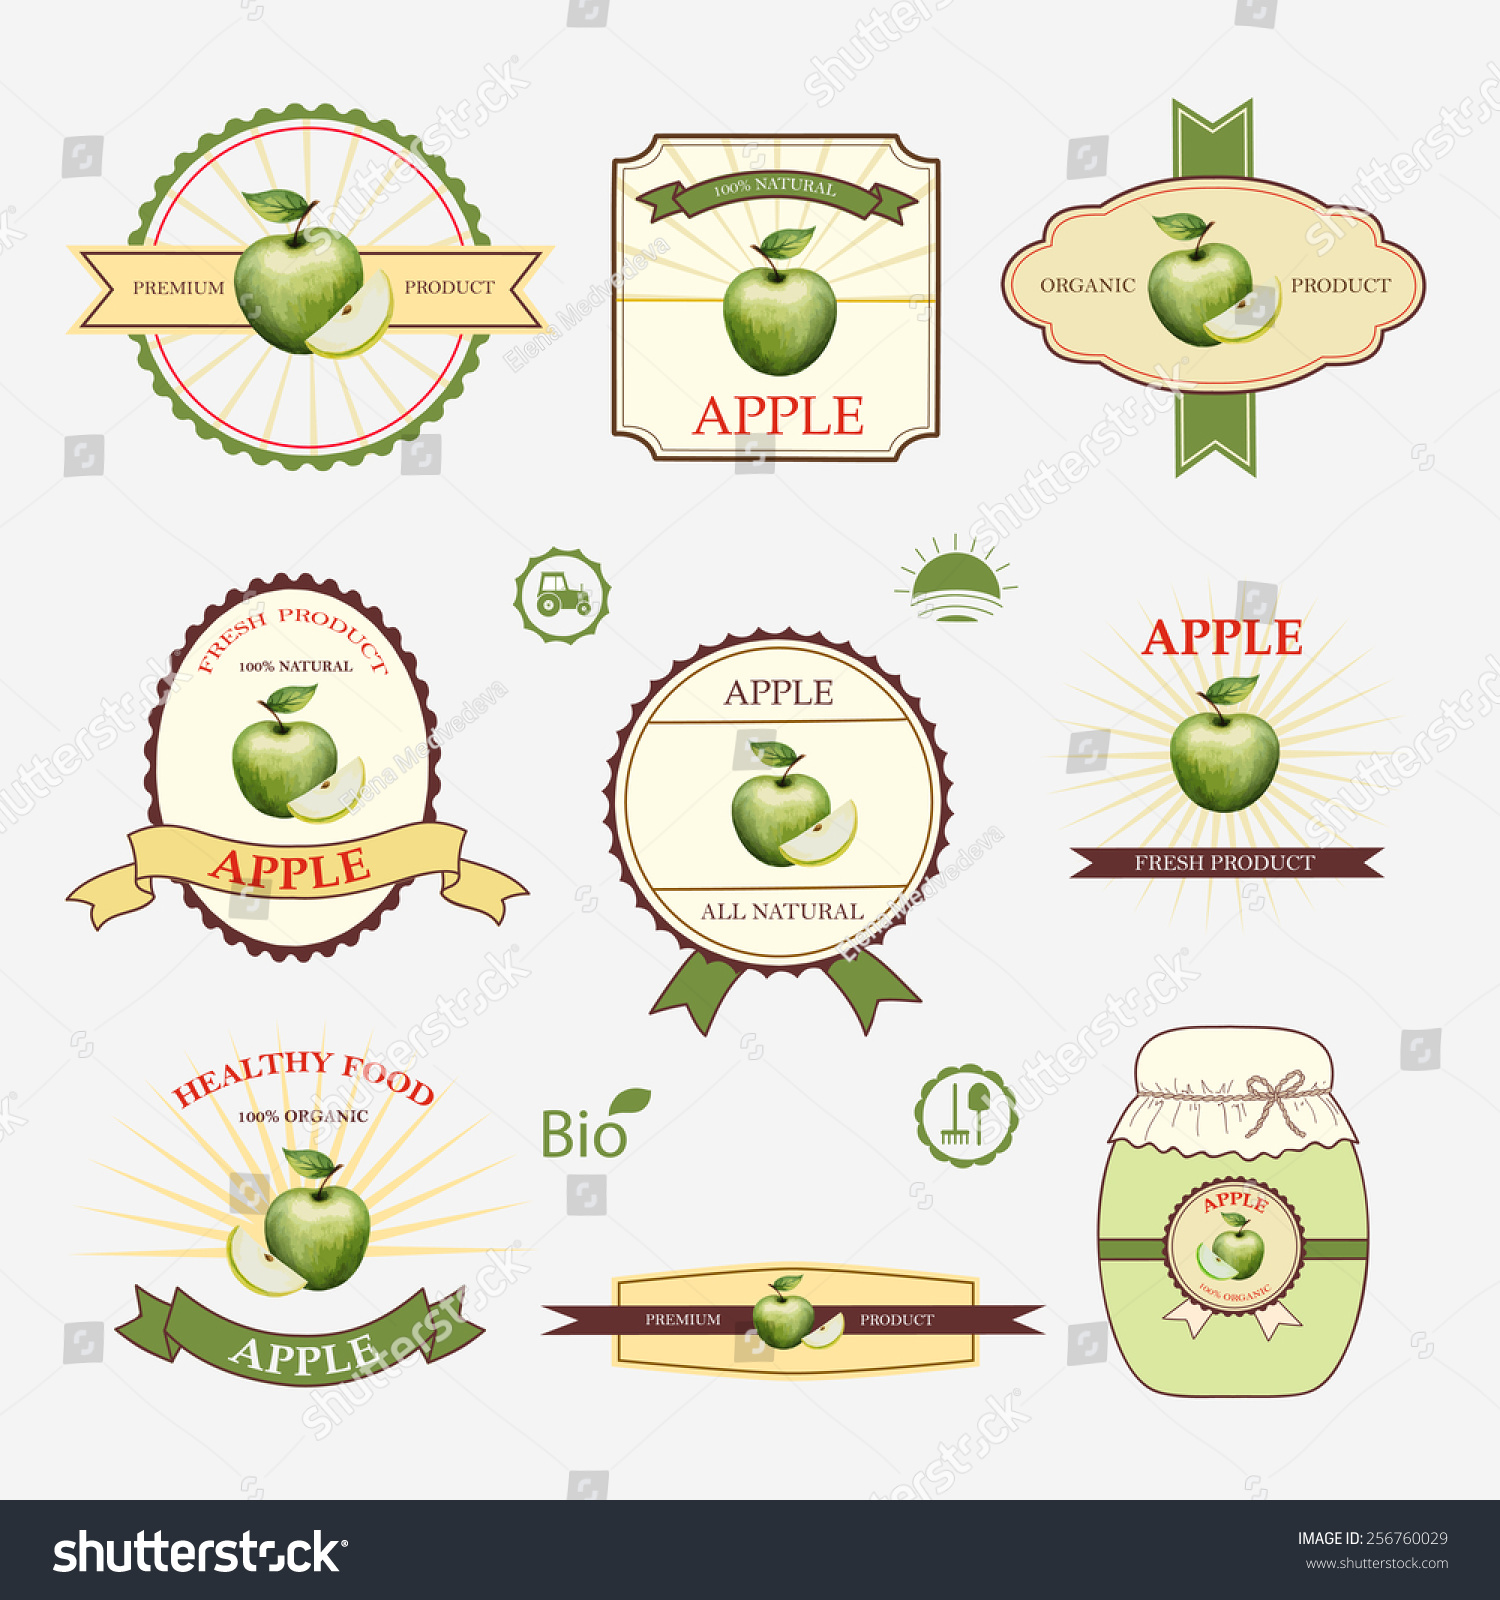 Apple Green Set Label Design Templates Stock Vector 256760029 .  Label Design Templates